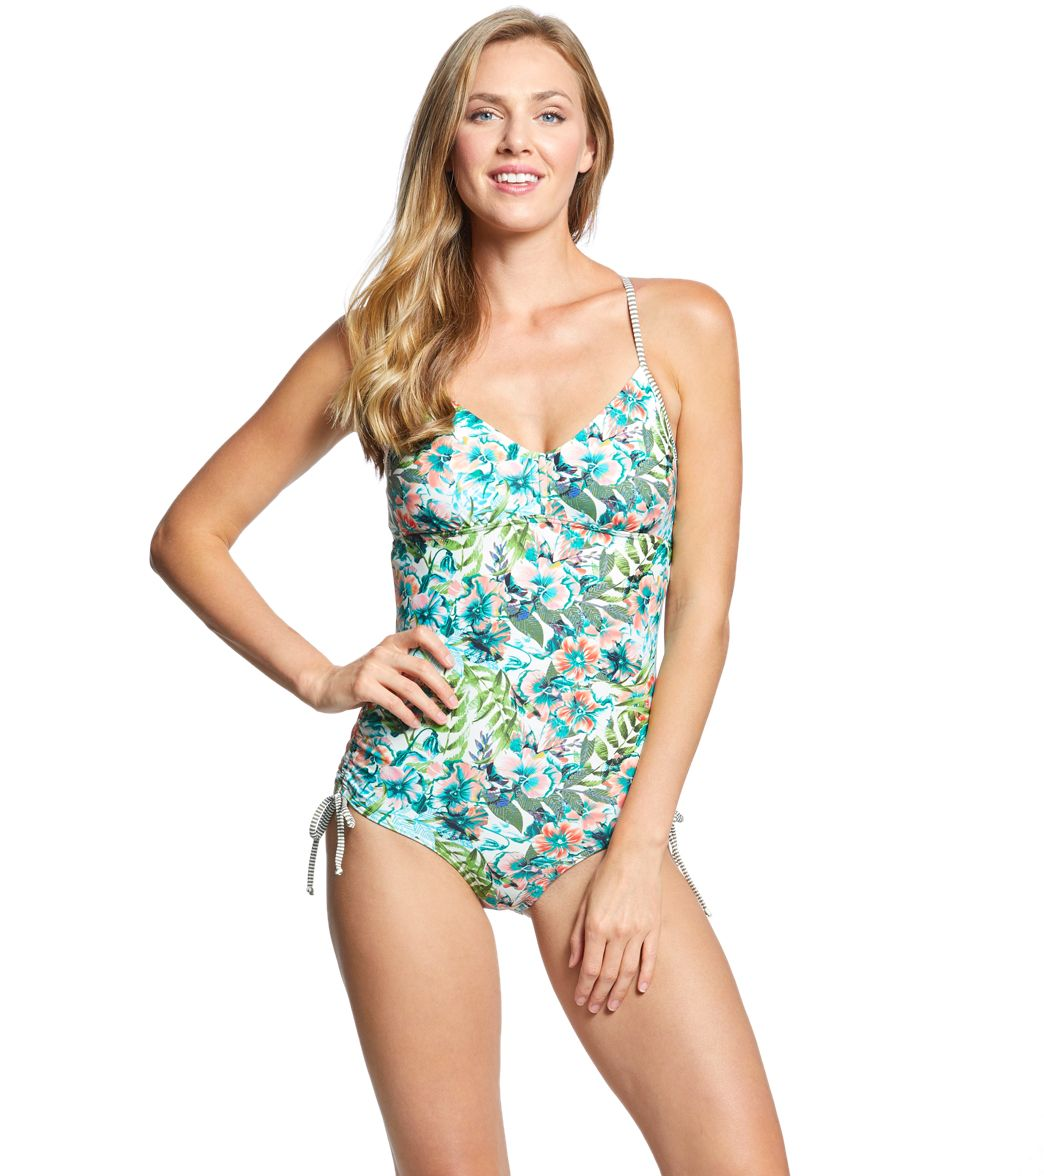 ba471d94998d3 Prana Moorea One Piece Swimsuit at SwimOutlet.com - Free Shipping